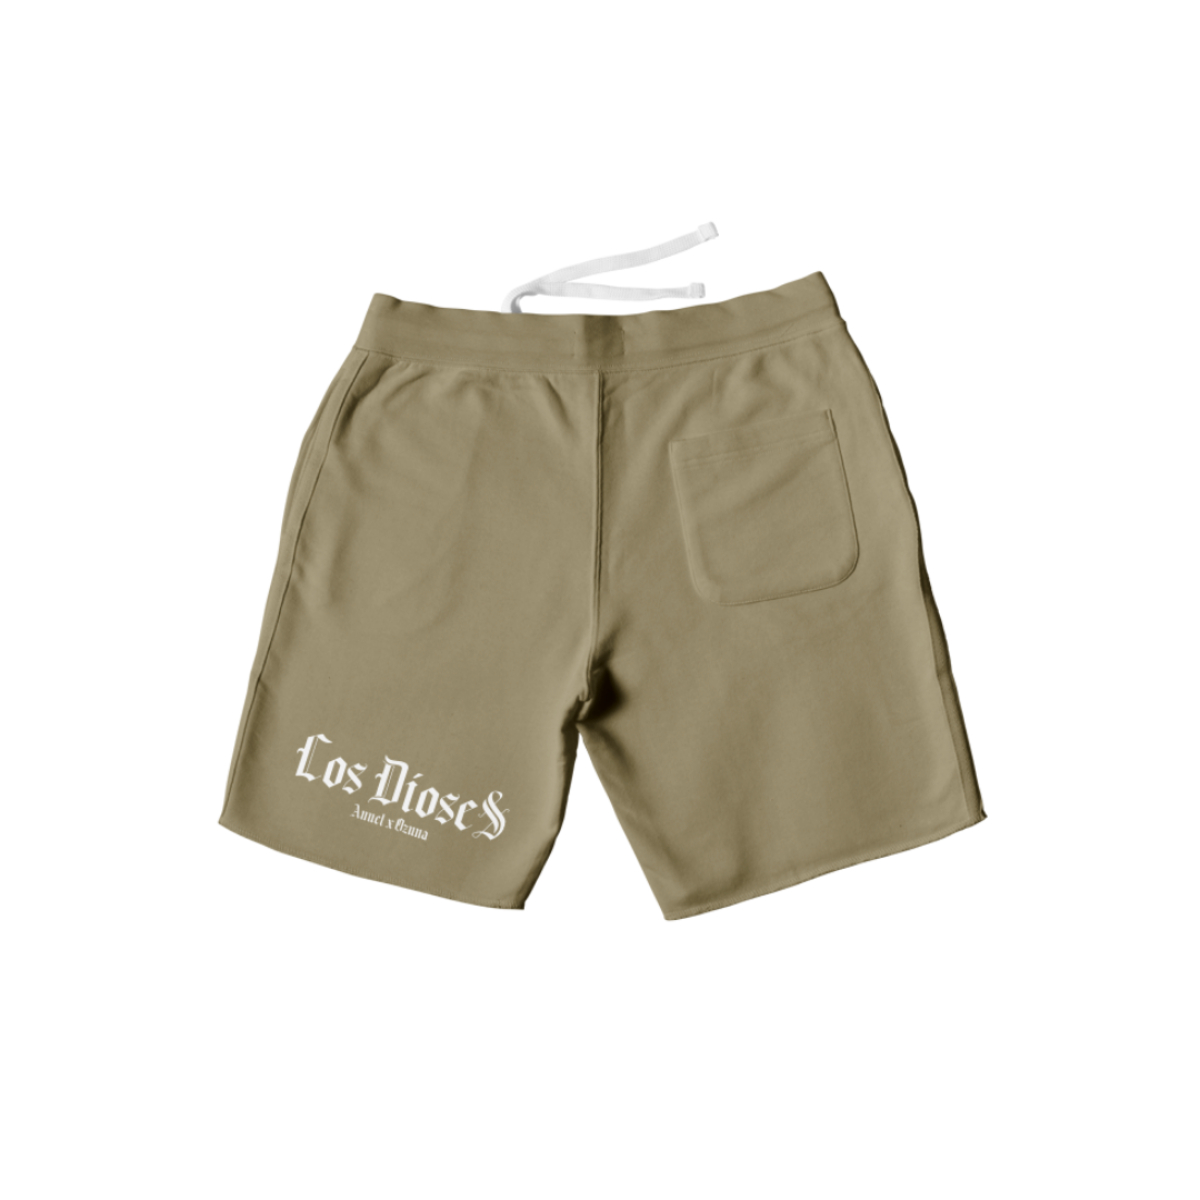 Los Dioses Beige Shorts